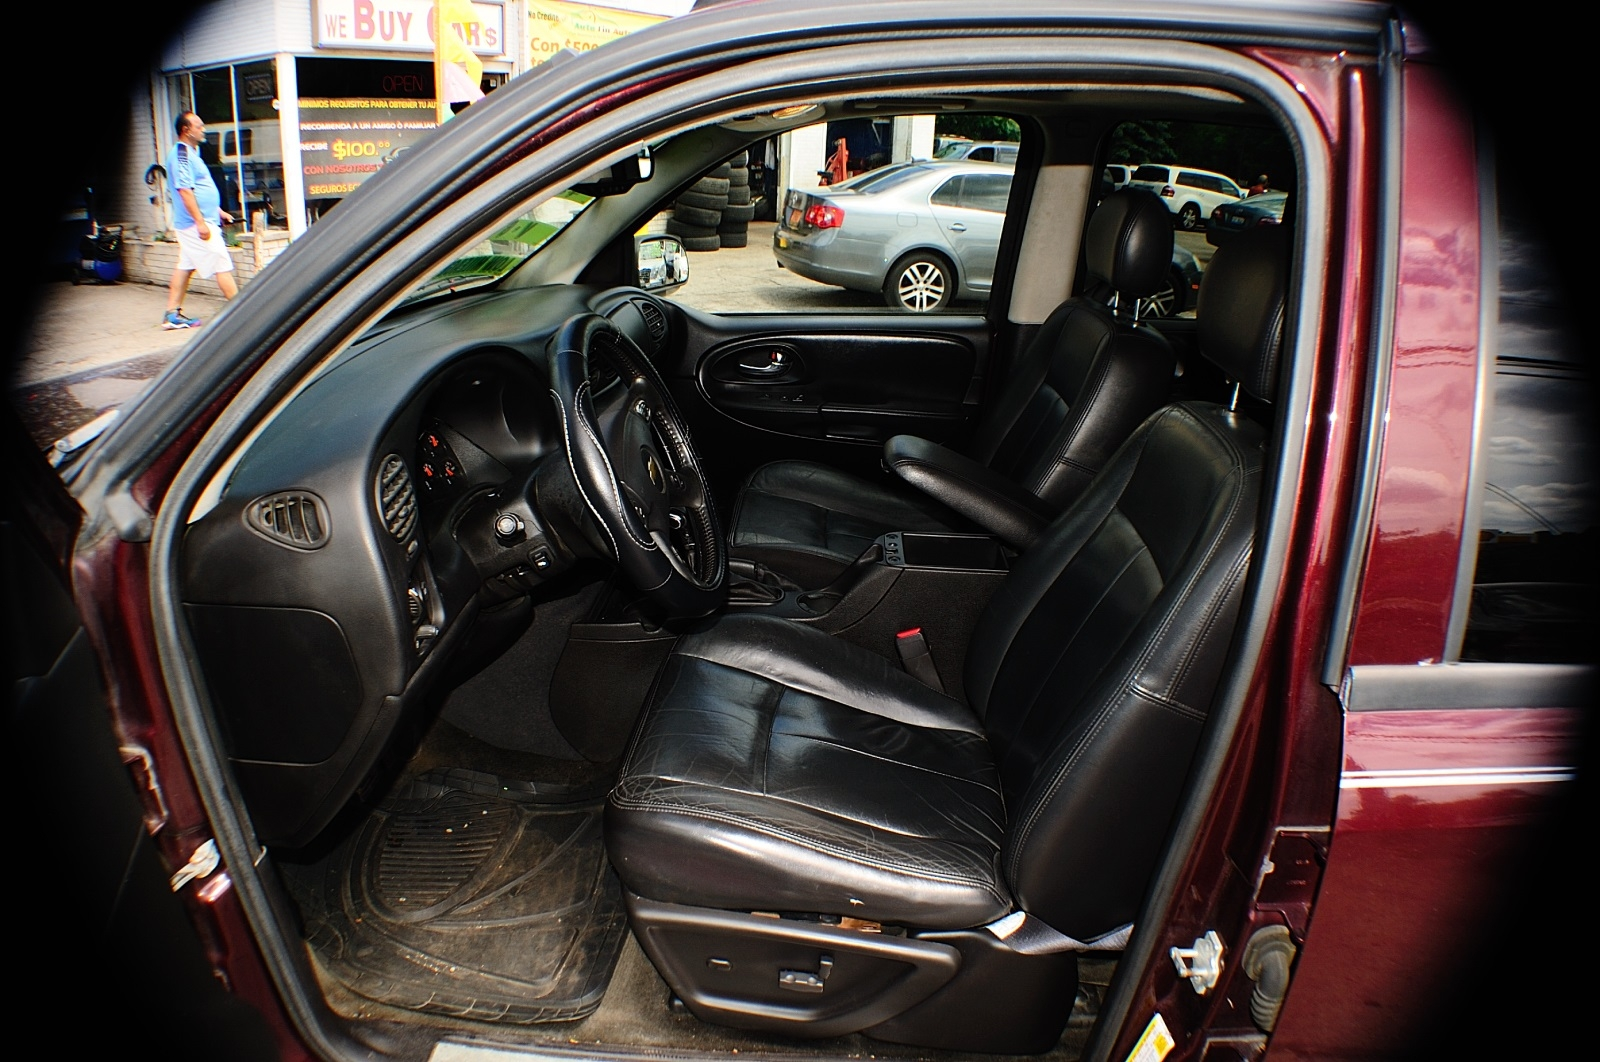 2006 Chevrolet Trailblazer LT Burgundy Used SUV Sale Streamwood Tinley Park Wheeling Woodridge